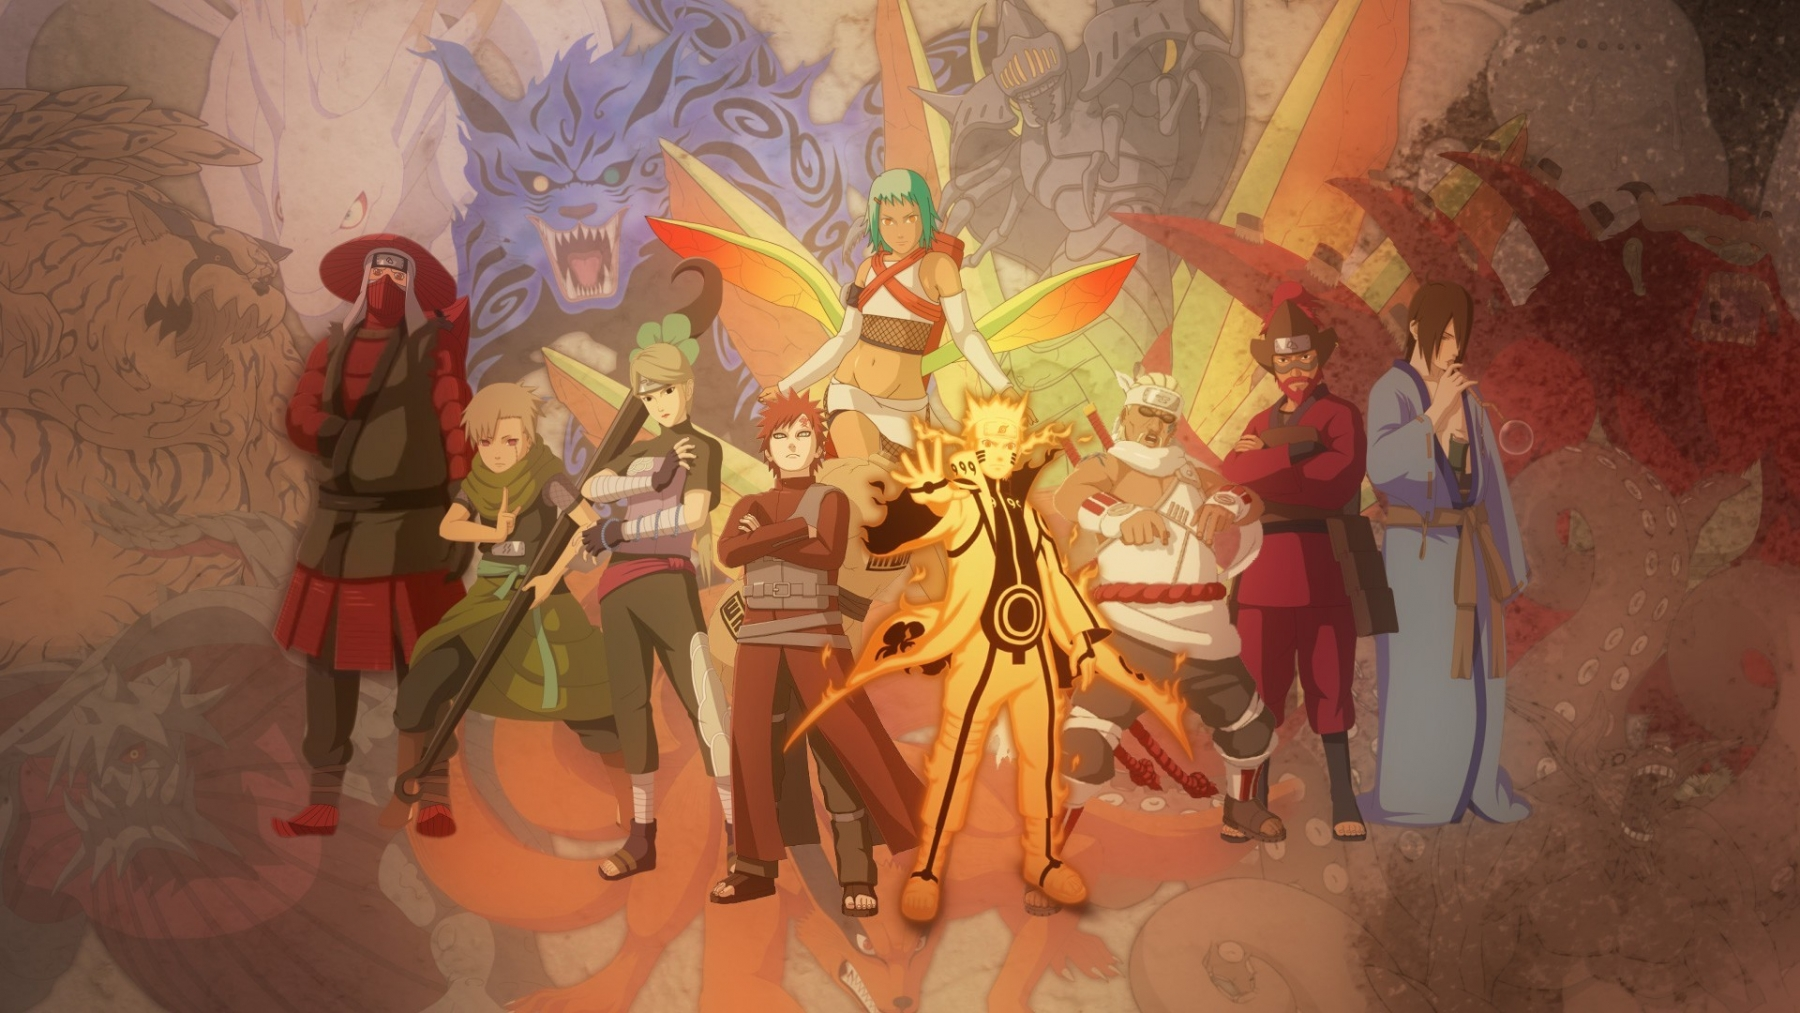 Naruto Anime Hd Wallpaper Collection 1080p Background Hd Images